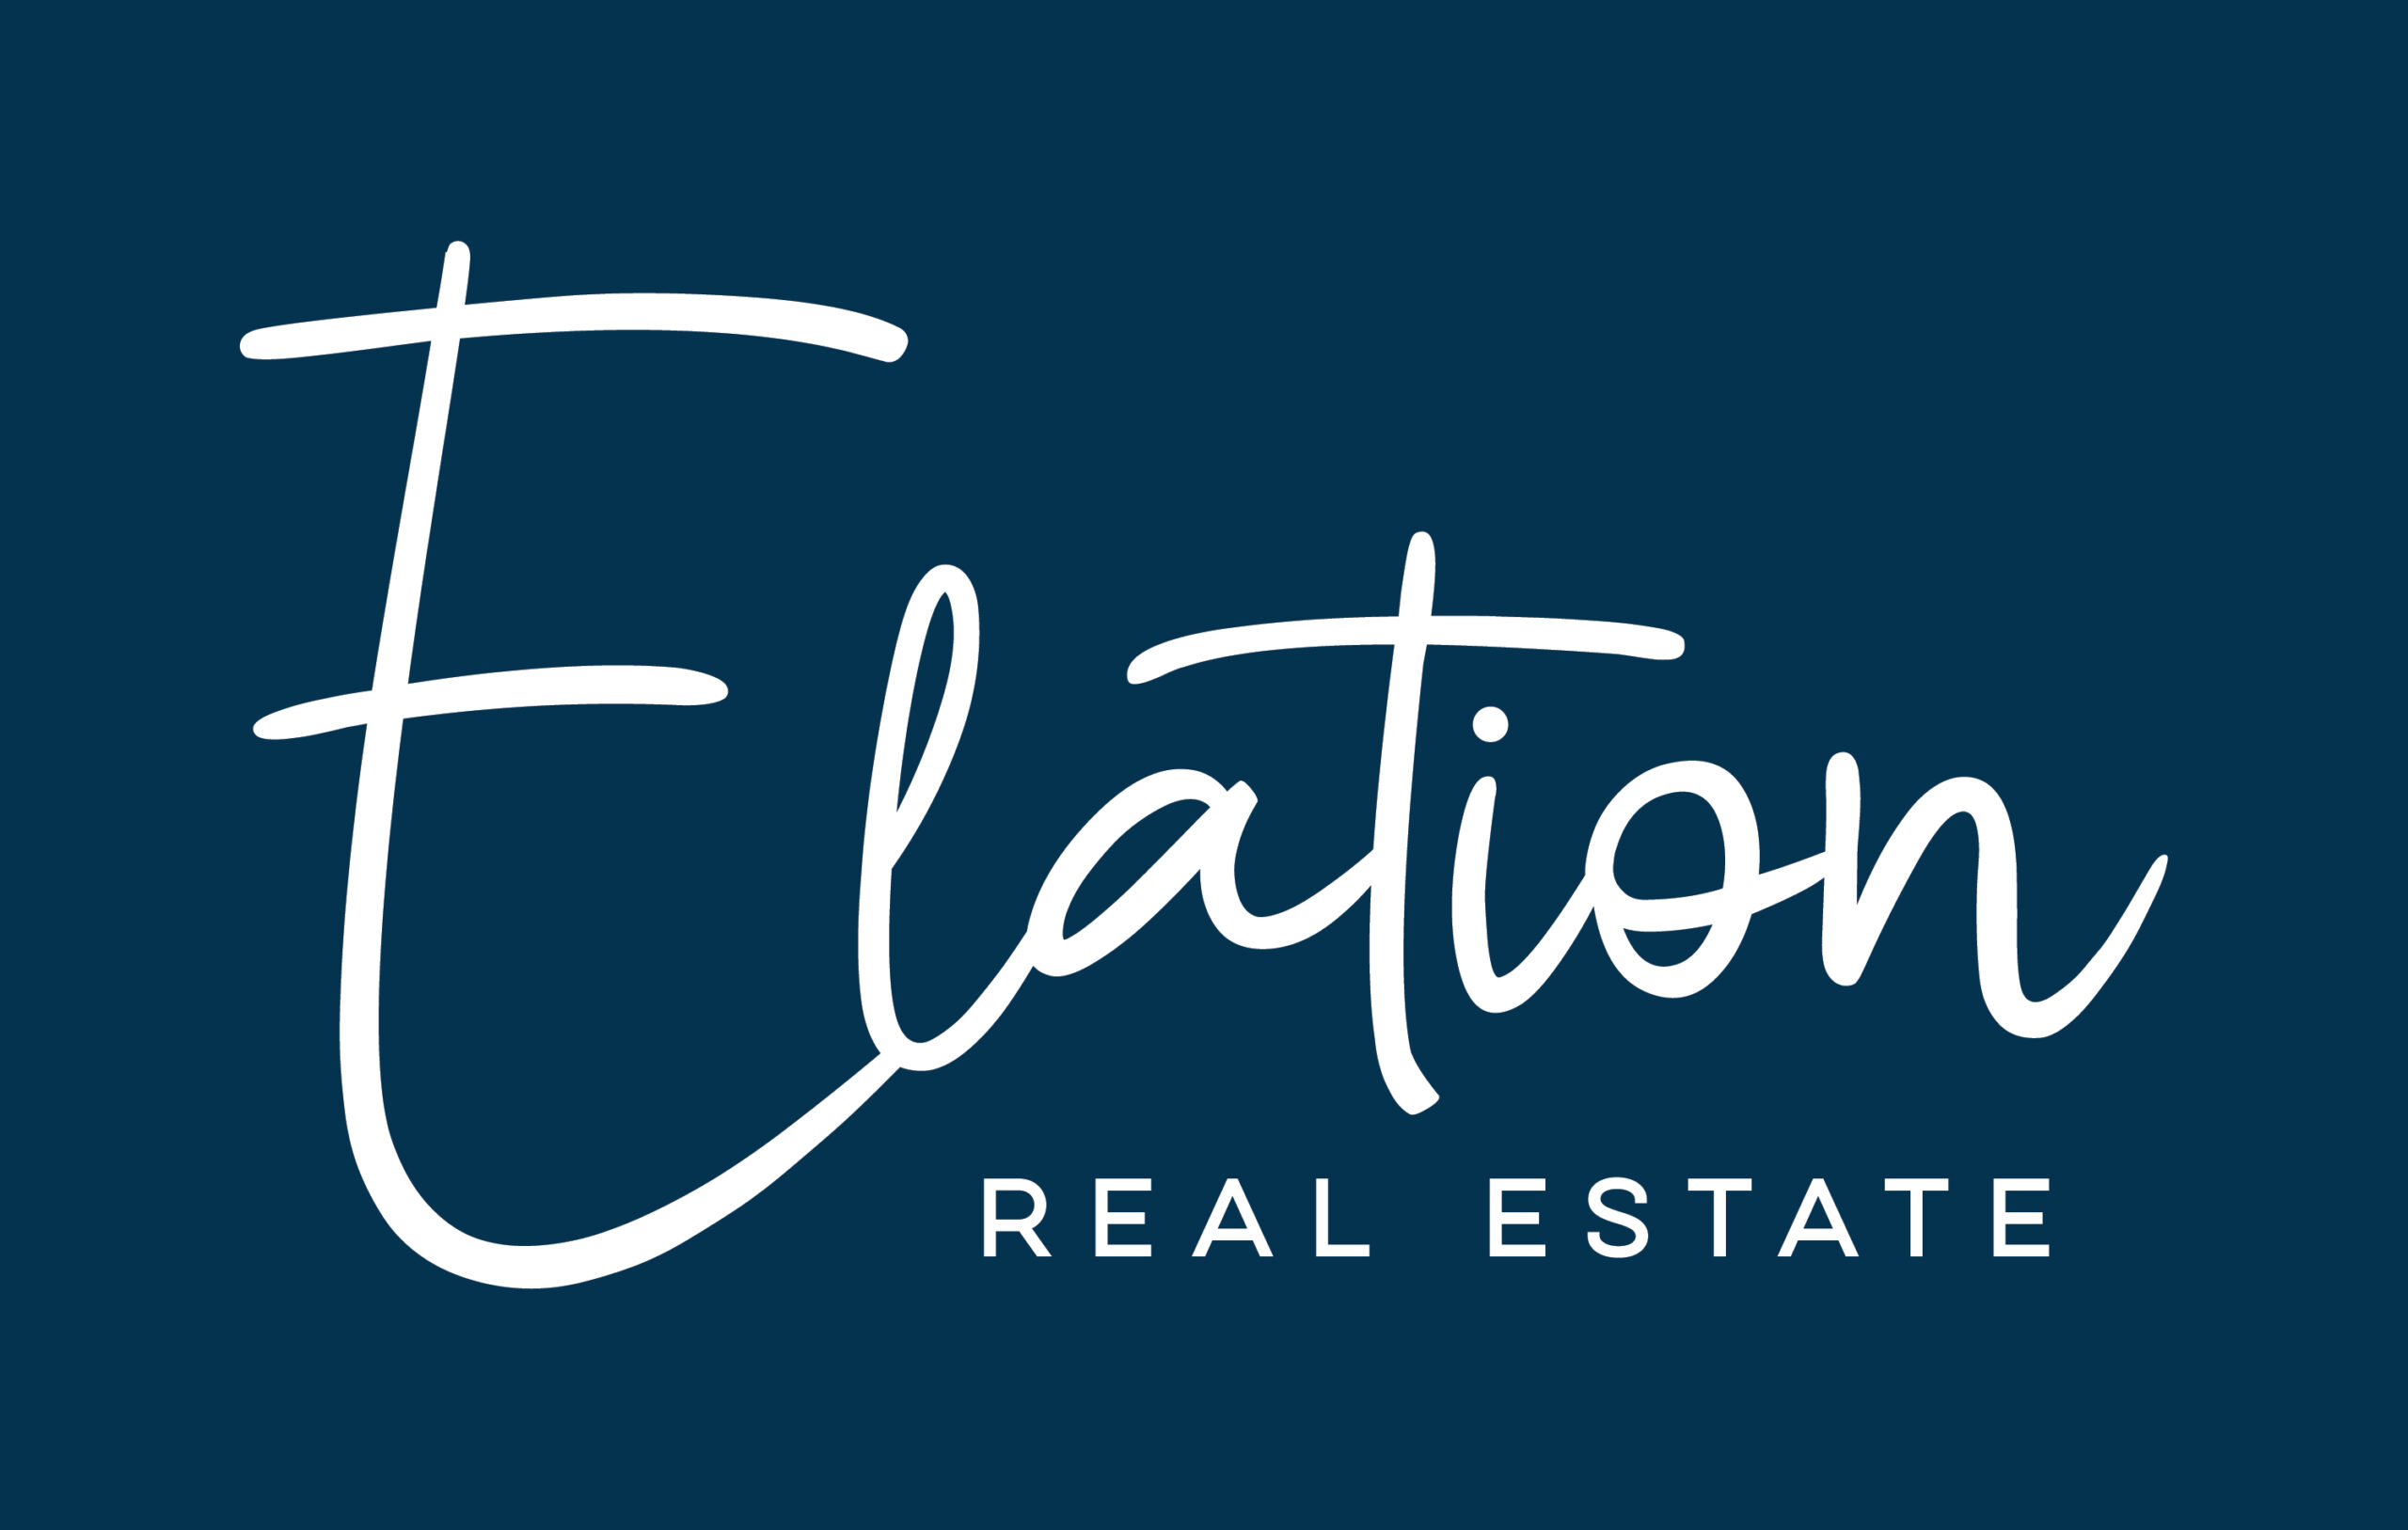 Make A Difference For Pleasanton Festival Exhibitor logo - Elation Real Estate